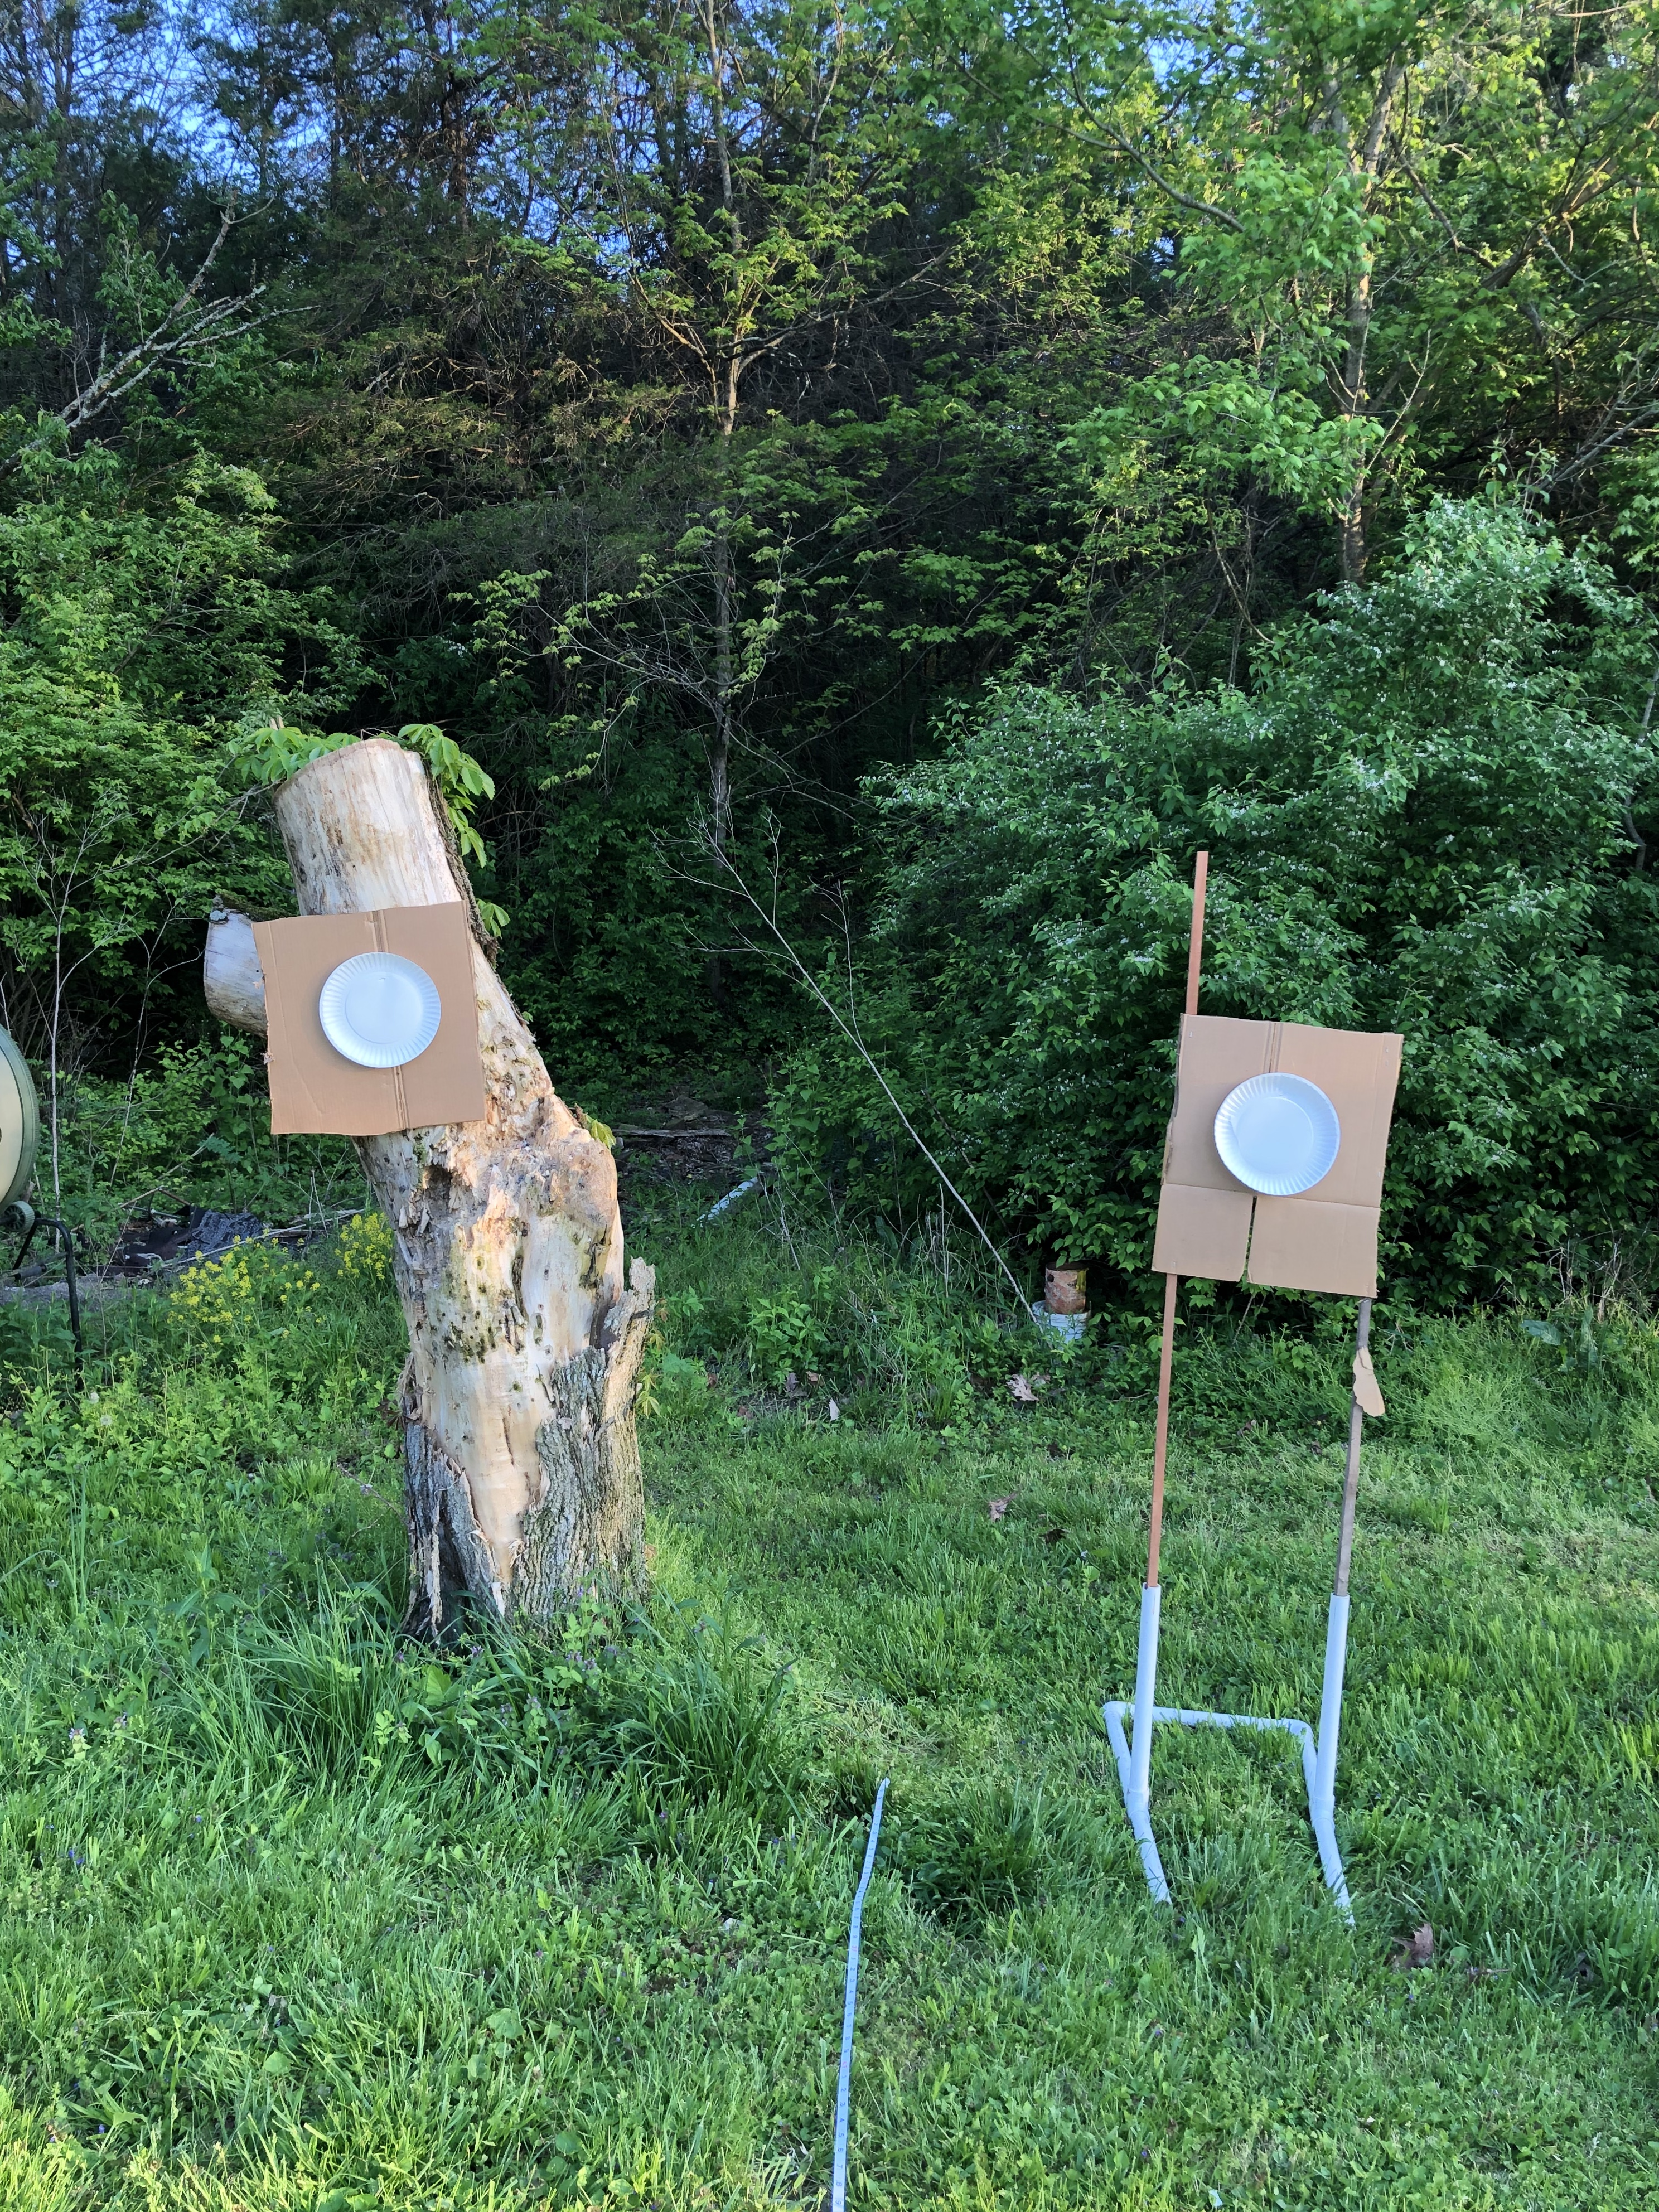 Draw practice from concealed at 12 feet, 2 threats, front sight focus-153a3a14-e46a-48c8-ac19-9efec69865b3.jpeg